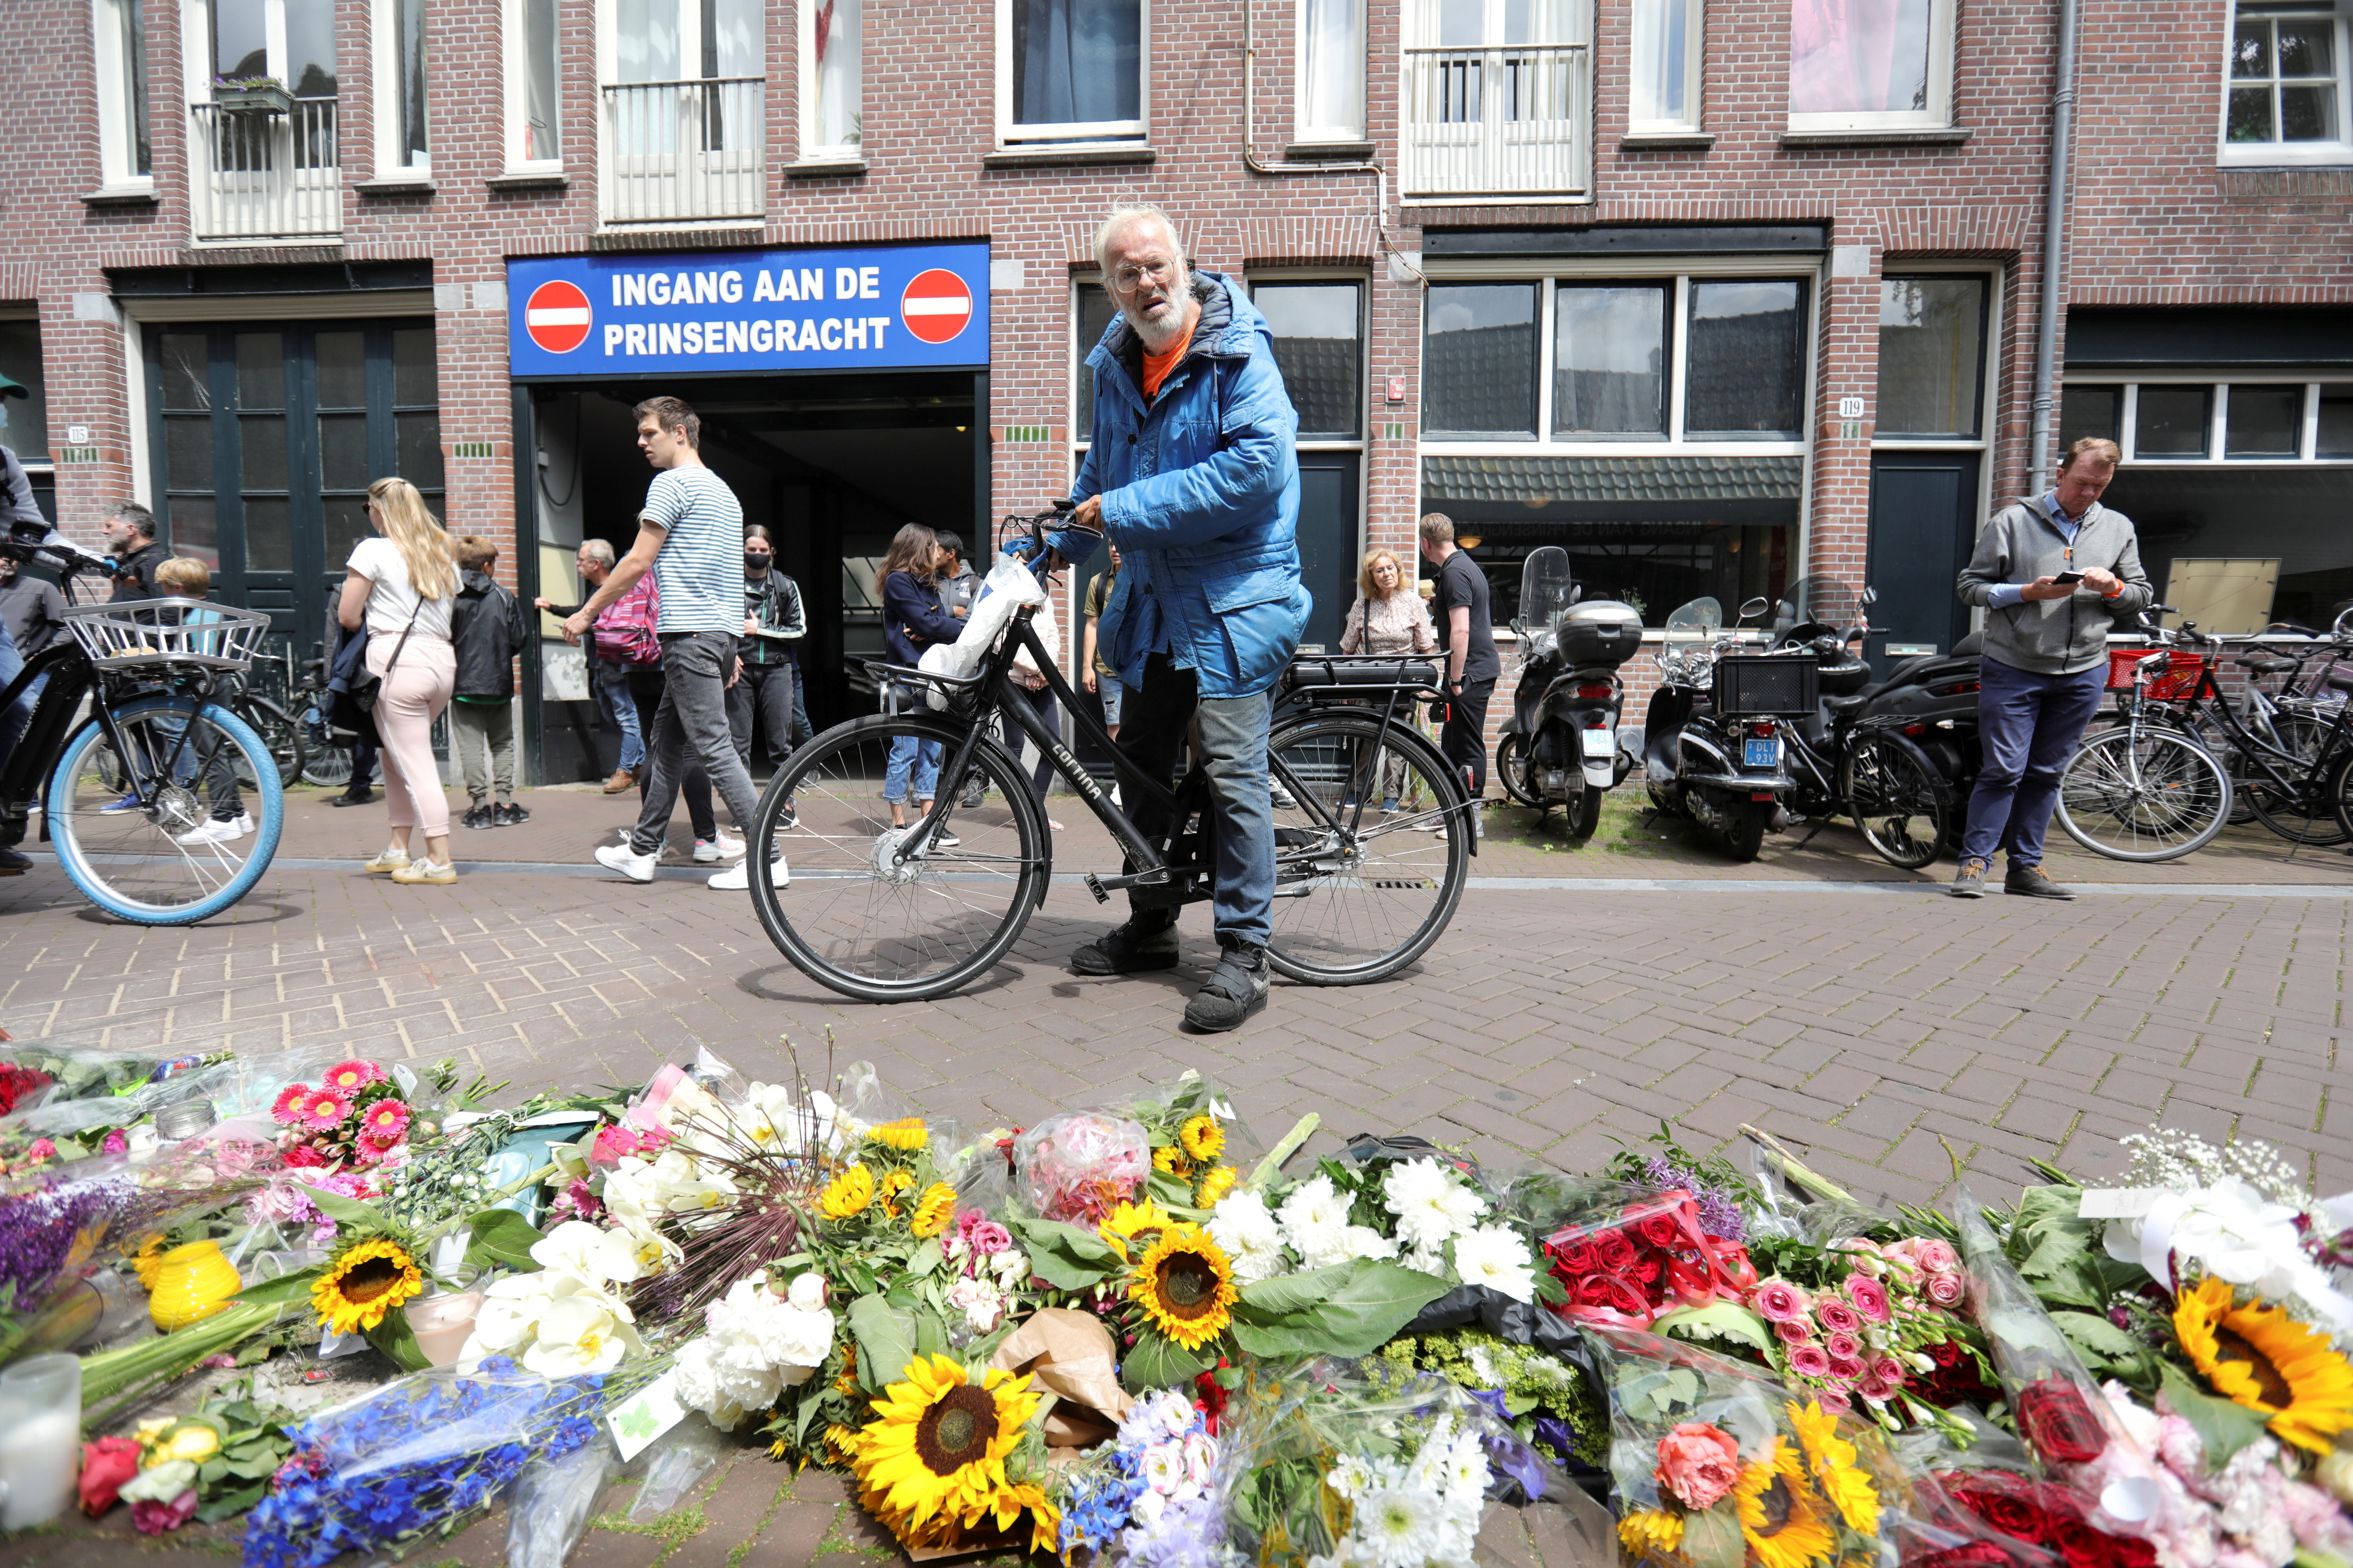 A man looks on next to a makeshift altar at the place where Dutch celebrity crime reporter Peter R. de Vries has been shot and reported seriously injured in Amsterdam, Netherlands, July 7, 2021. REUTERS/Eva Plevier/File Photo